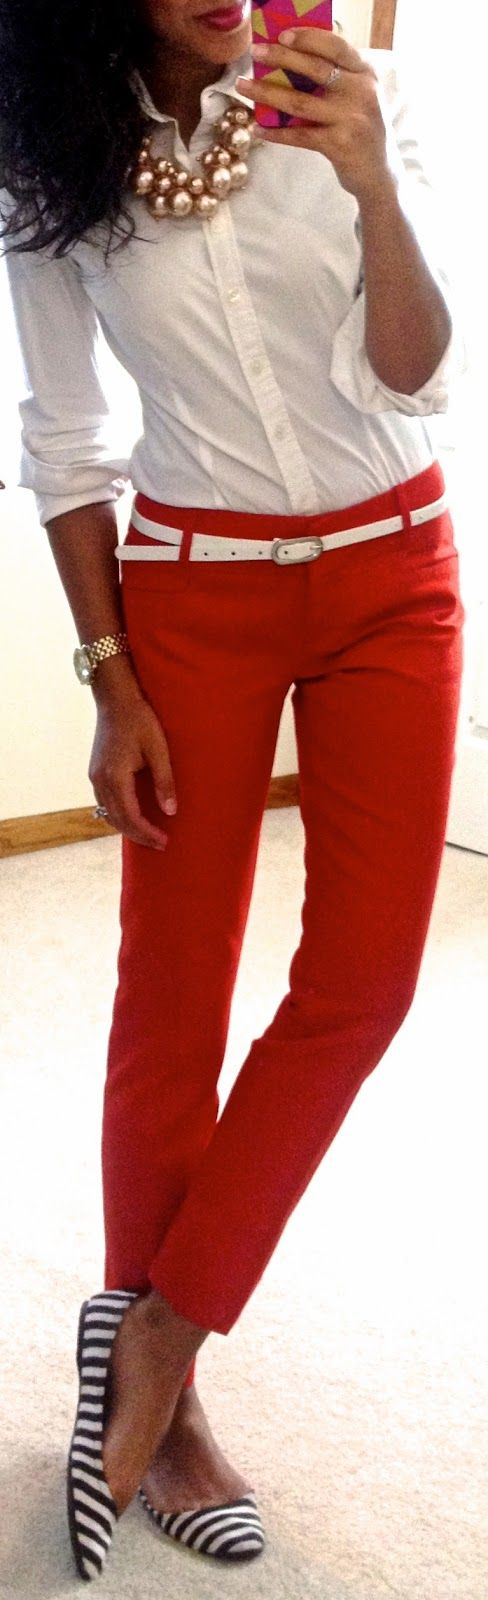 Work Outfit: White Button down, red pants, white belt, striped flats- Love the look!  Especially the necklace